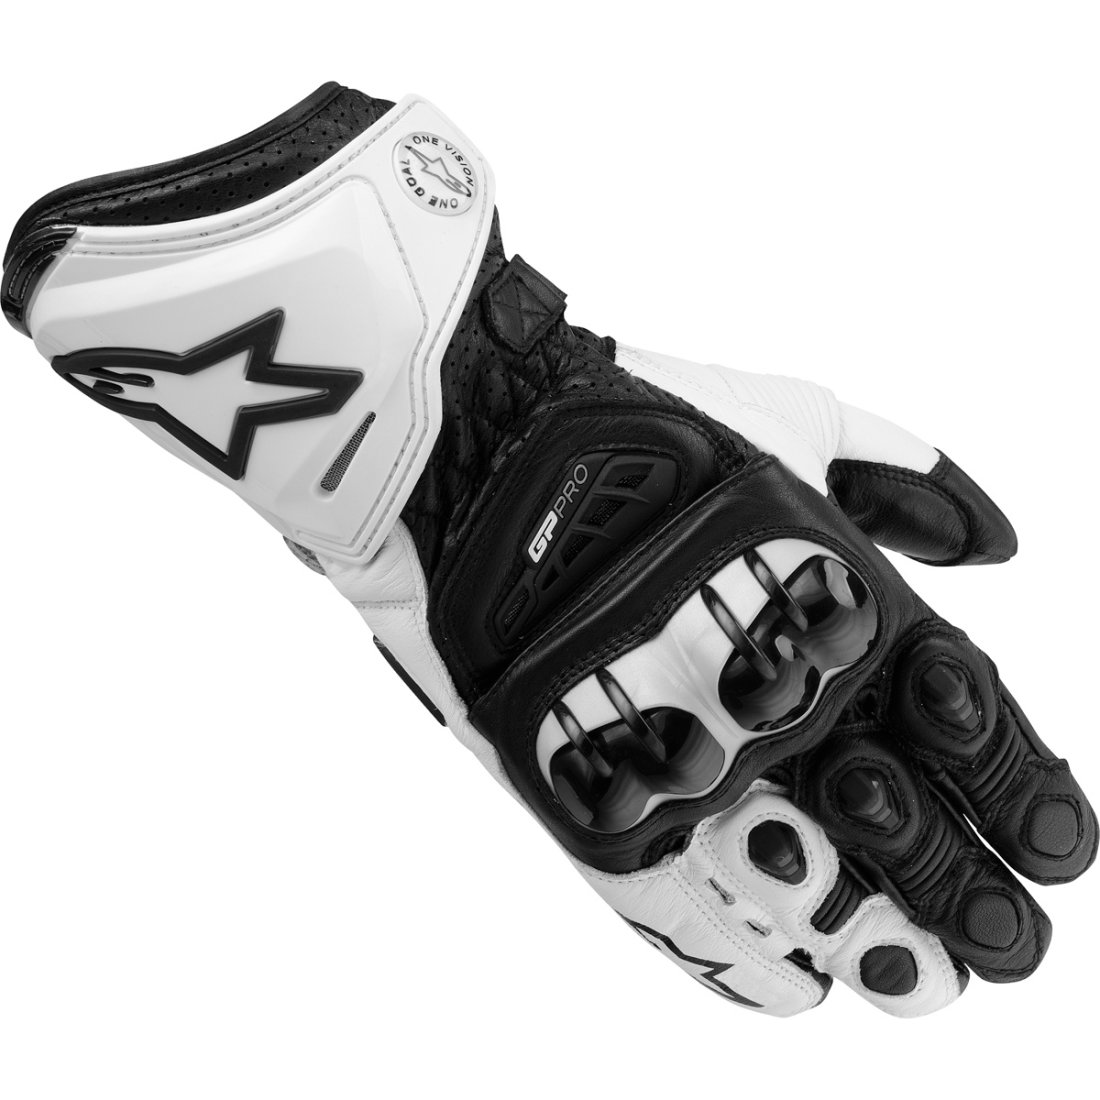 alpinestars gp pro black white gloves motocard. Black Bedroom Furniture Sets. Home Design Ideas